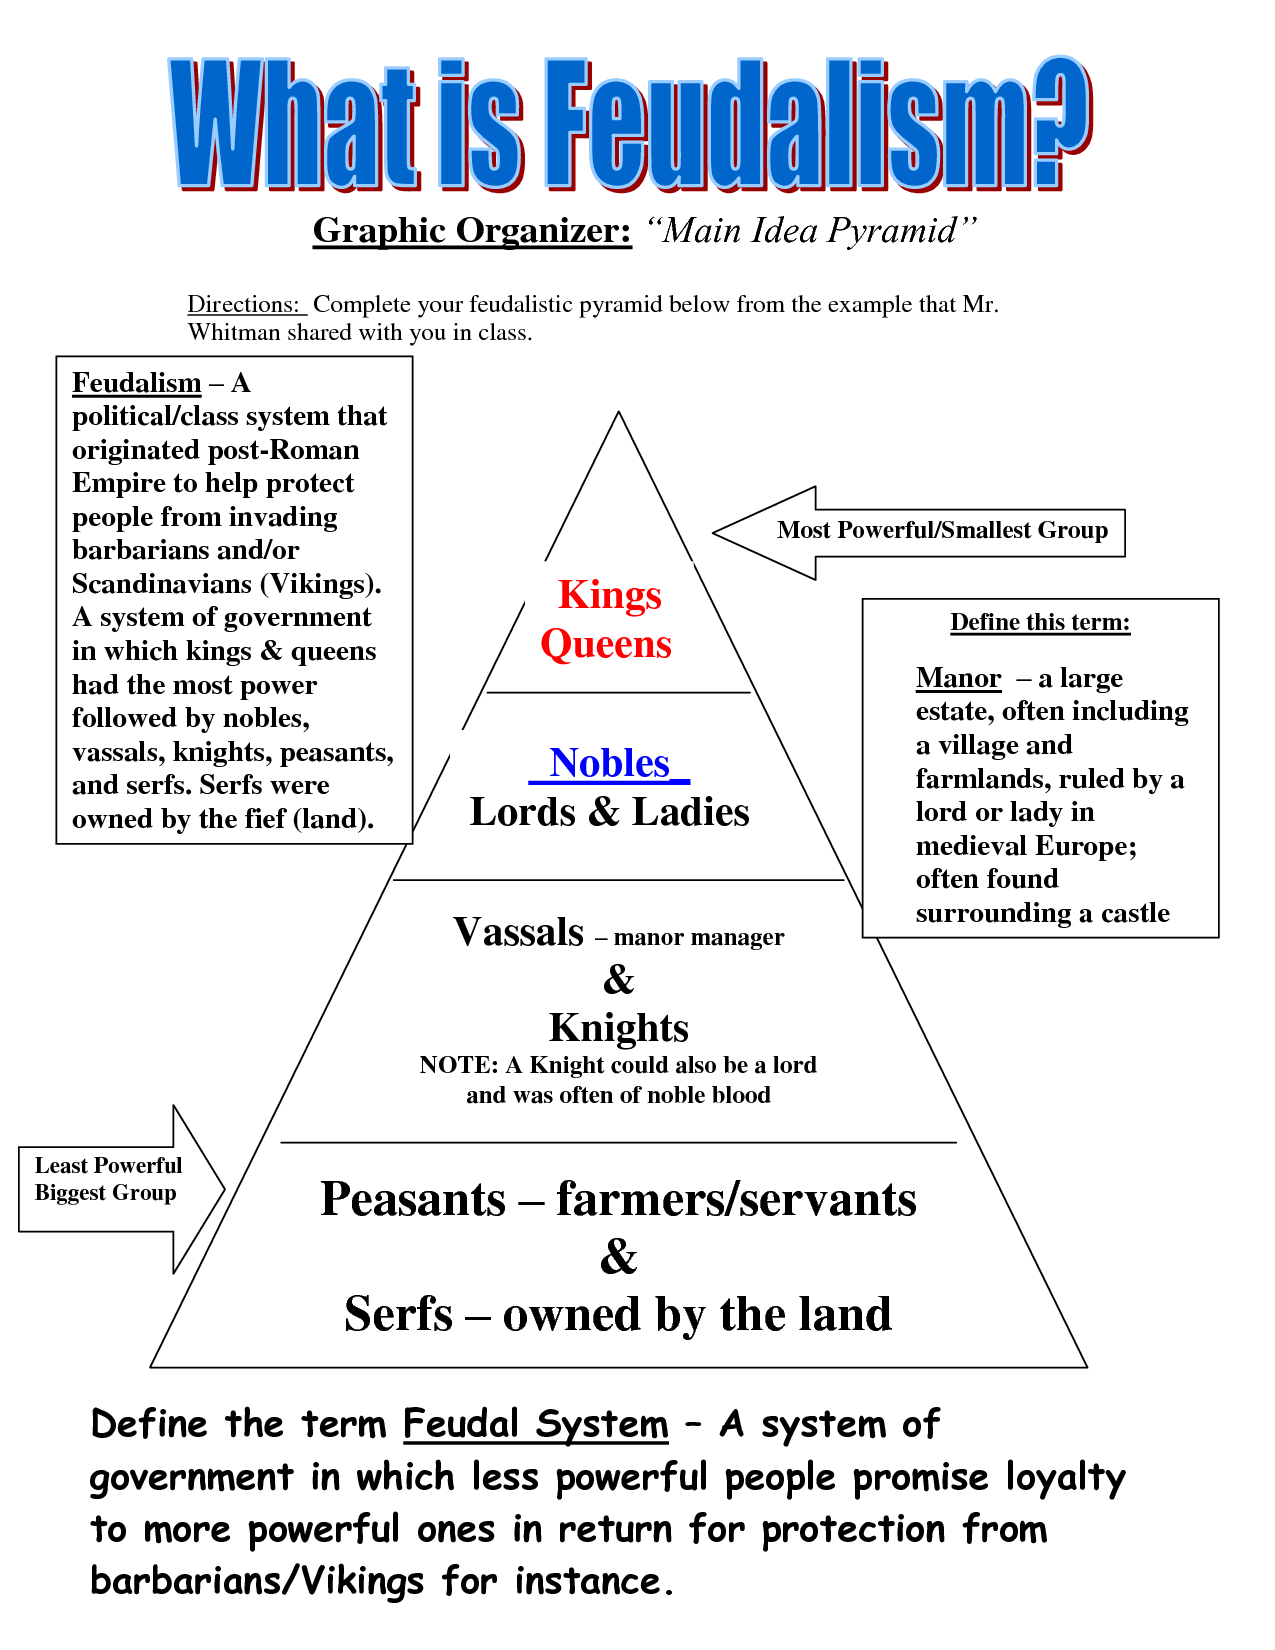 age of feudalism essay Feudalism played a role in the middle ages it drew a clear line separating social classes and created codependency between the rich and the poor like any economic system, there were advantages and.